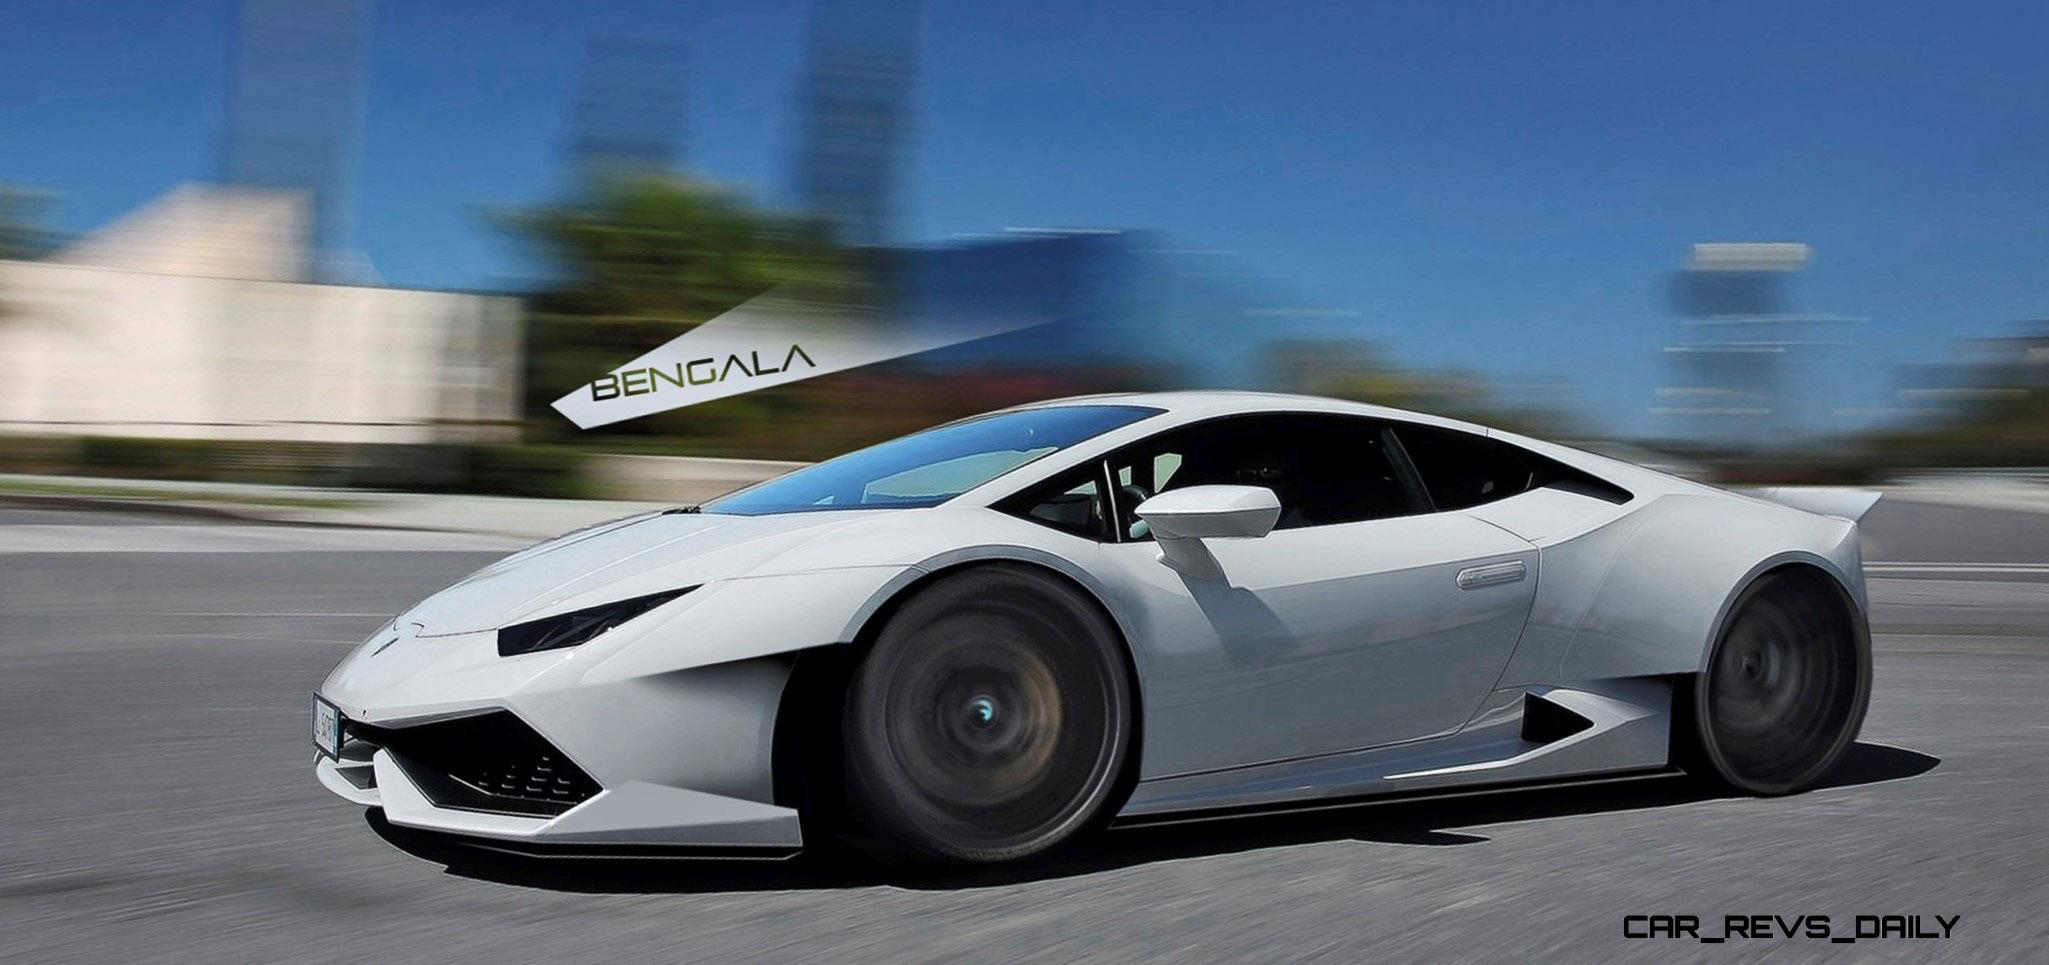 Sports Cars Luxury >> BENGALA Auto Design - Widebody Boutique Prelaunch Gallery